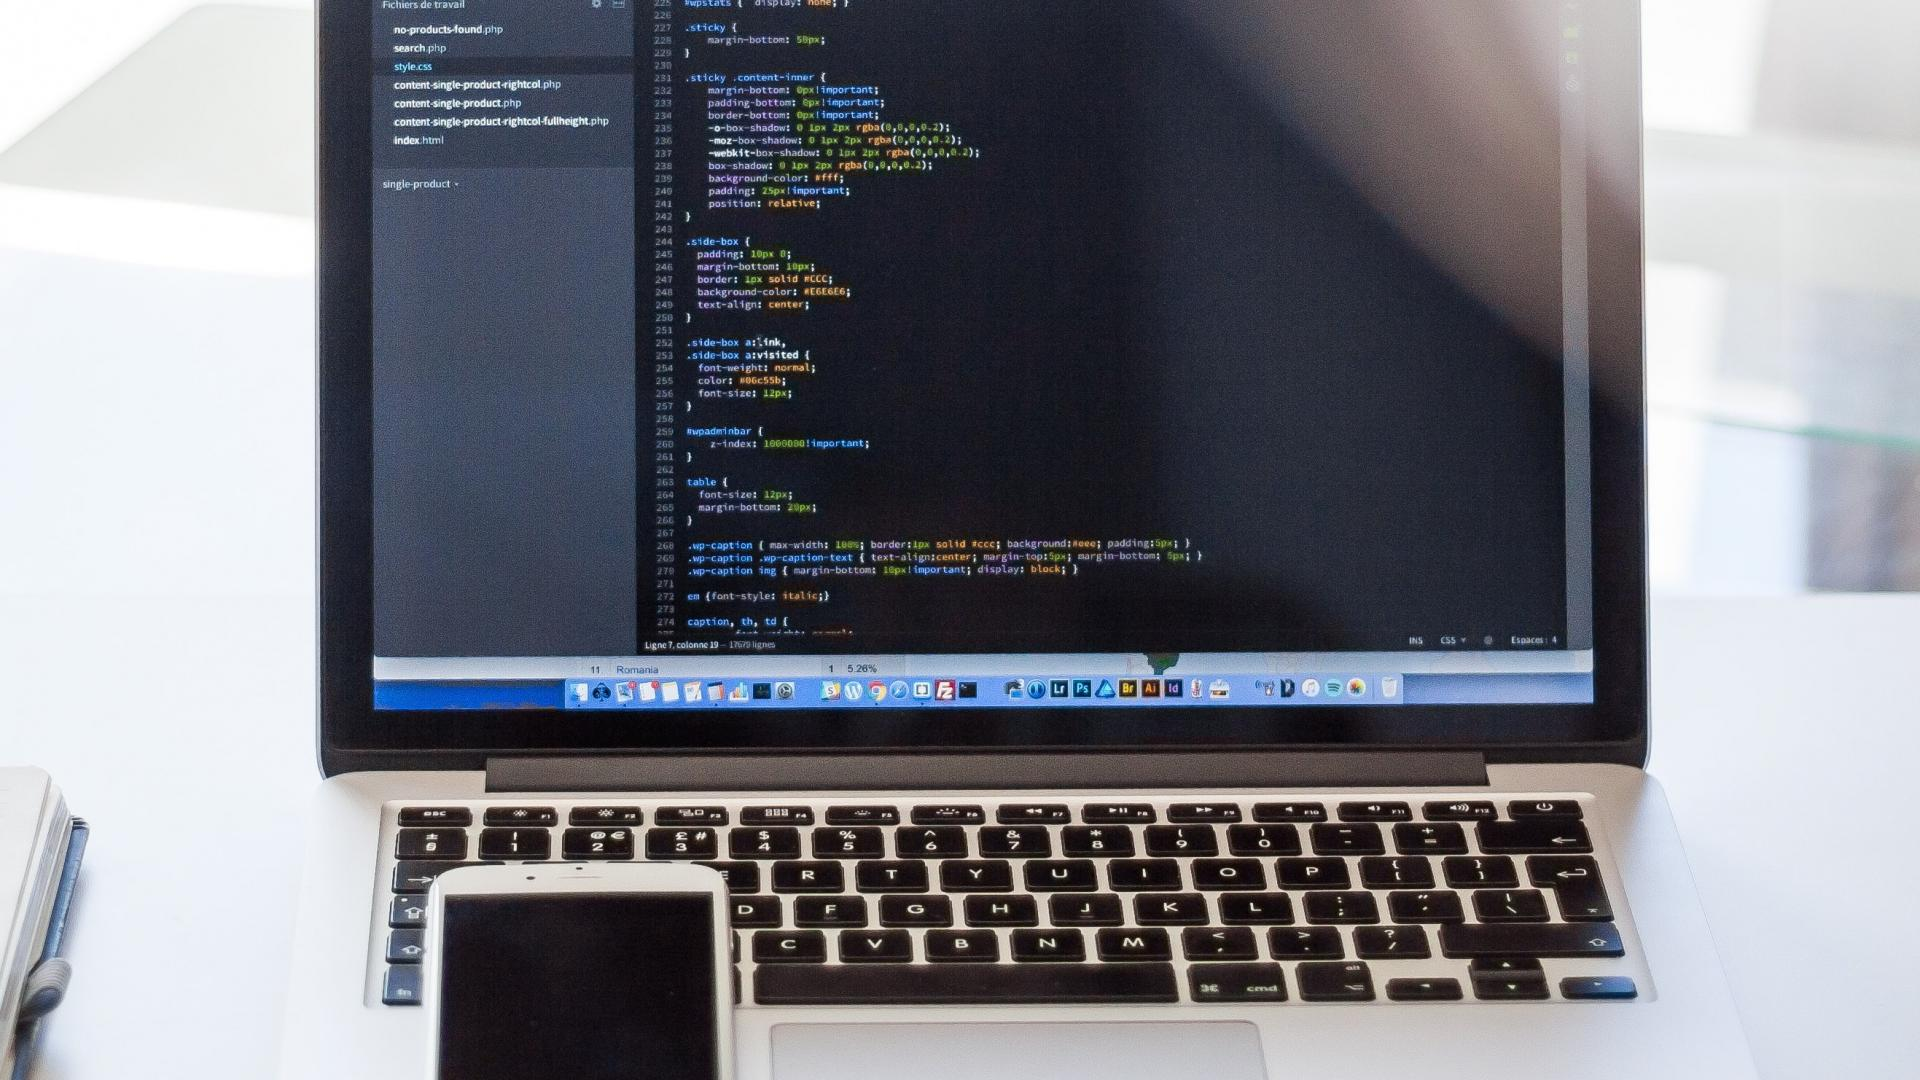 What Coding techniques will help protect your website?